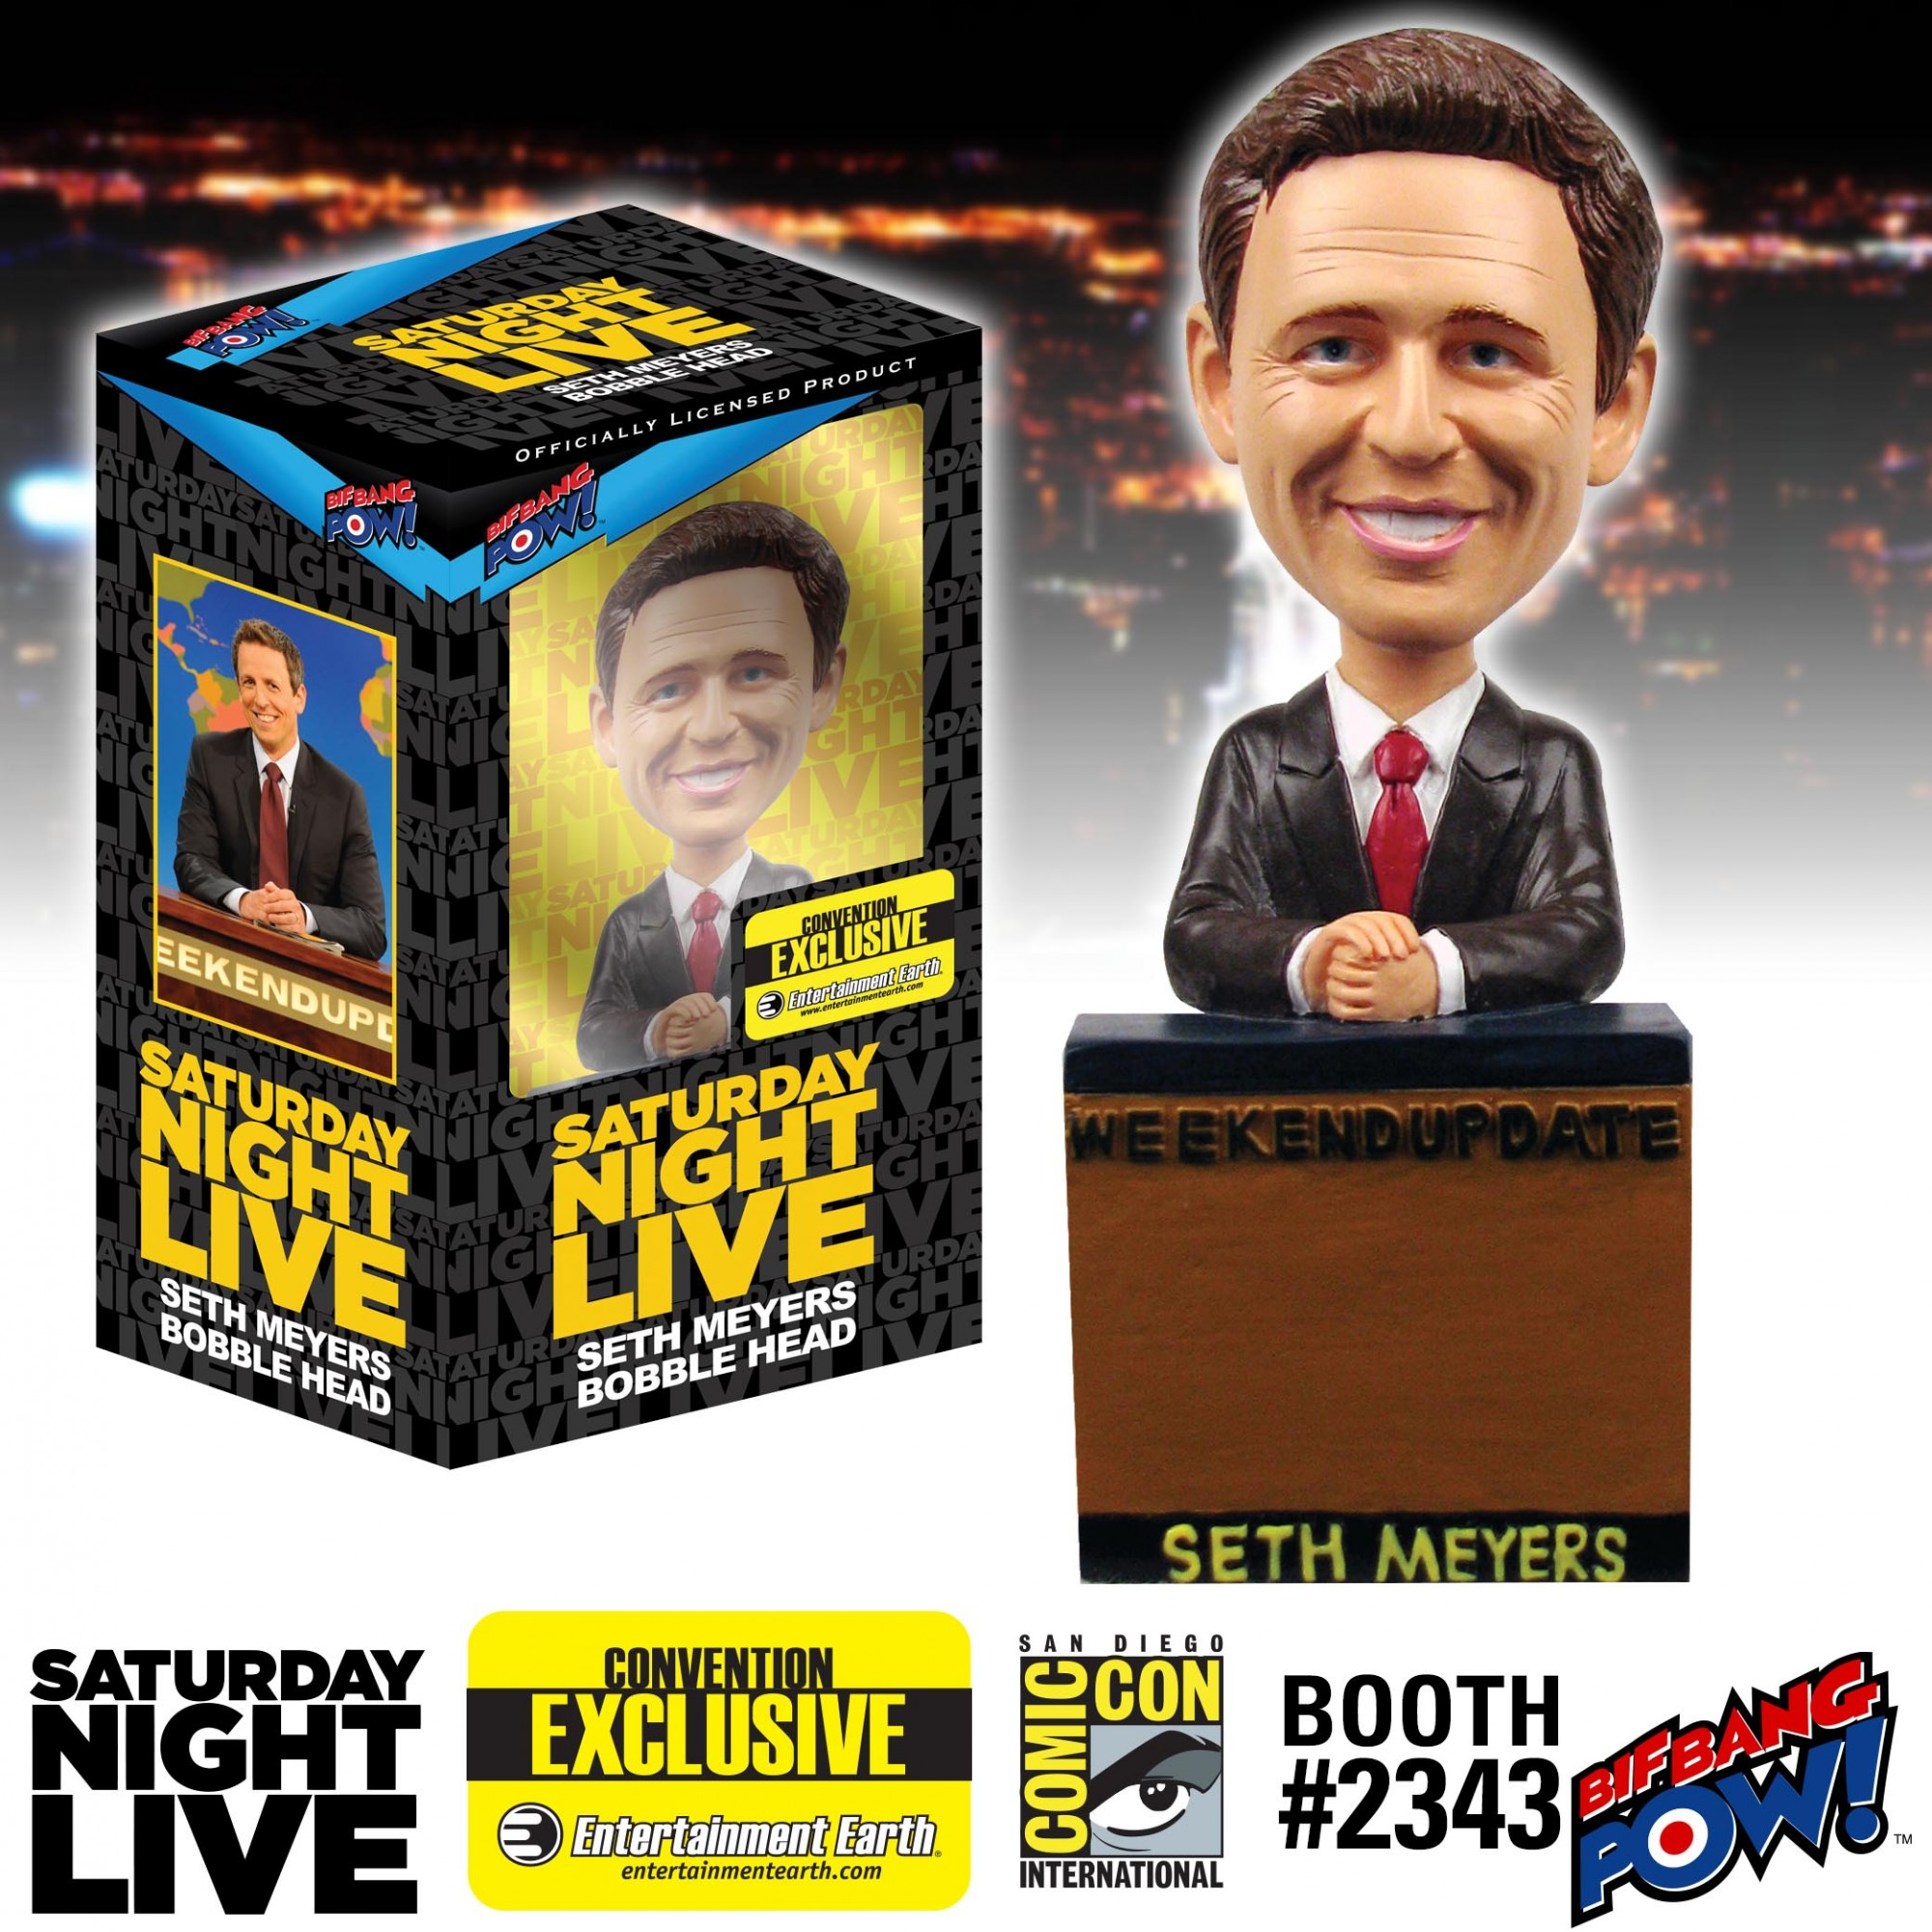 BBP23005_Seth Meyers Weekend Update_HiRes copy